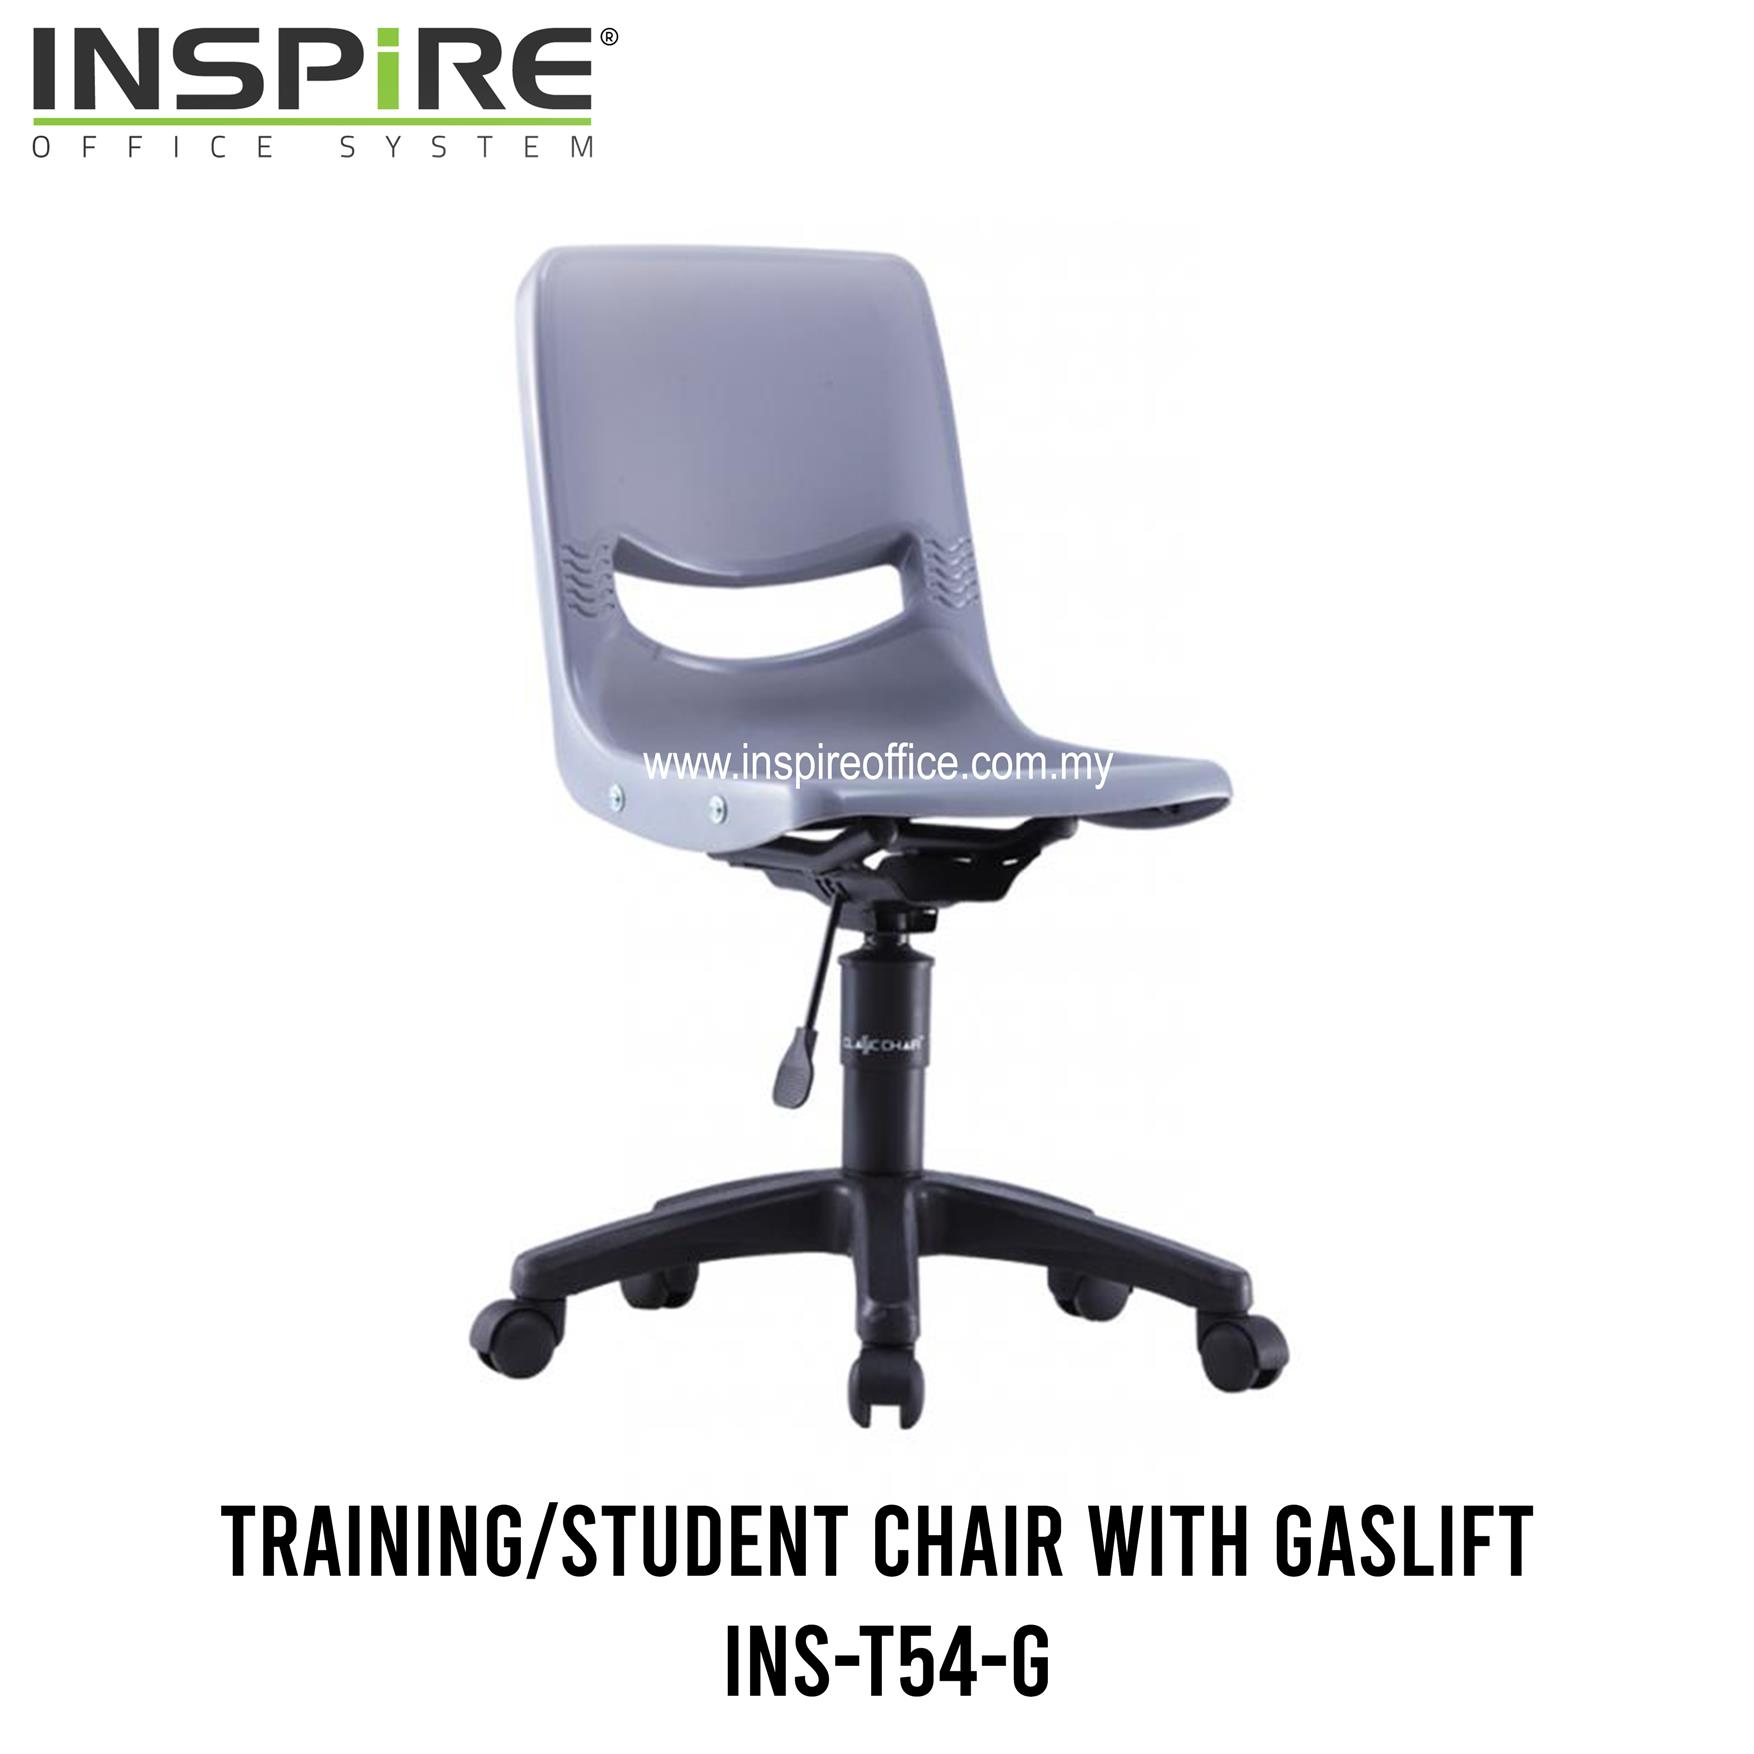 INS-T54-G Training/Student Chair With Gaslift